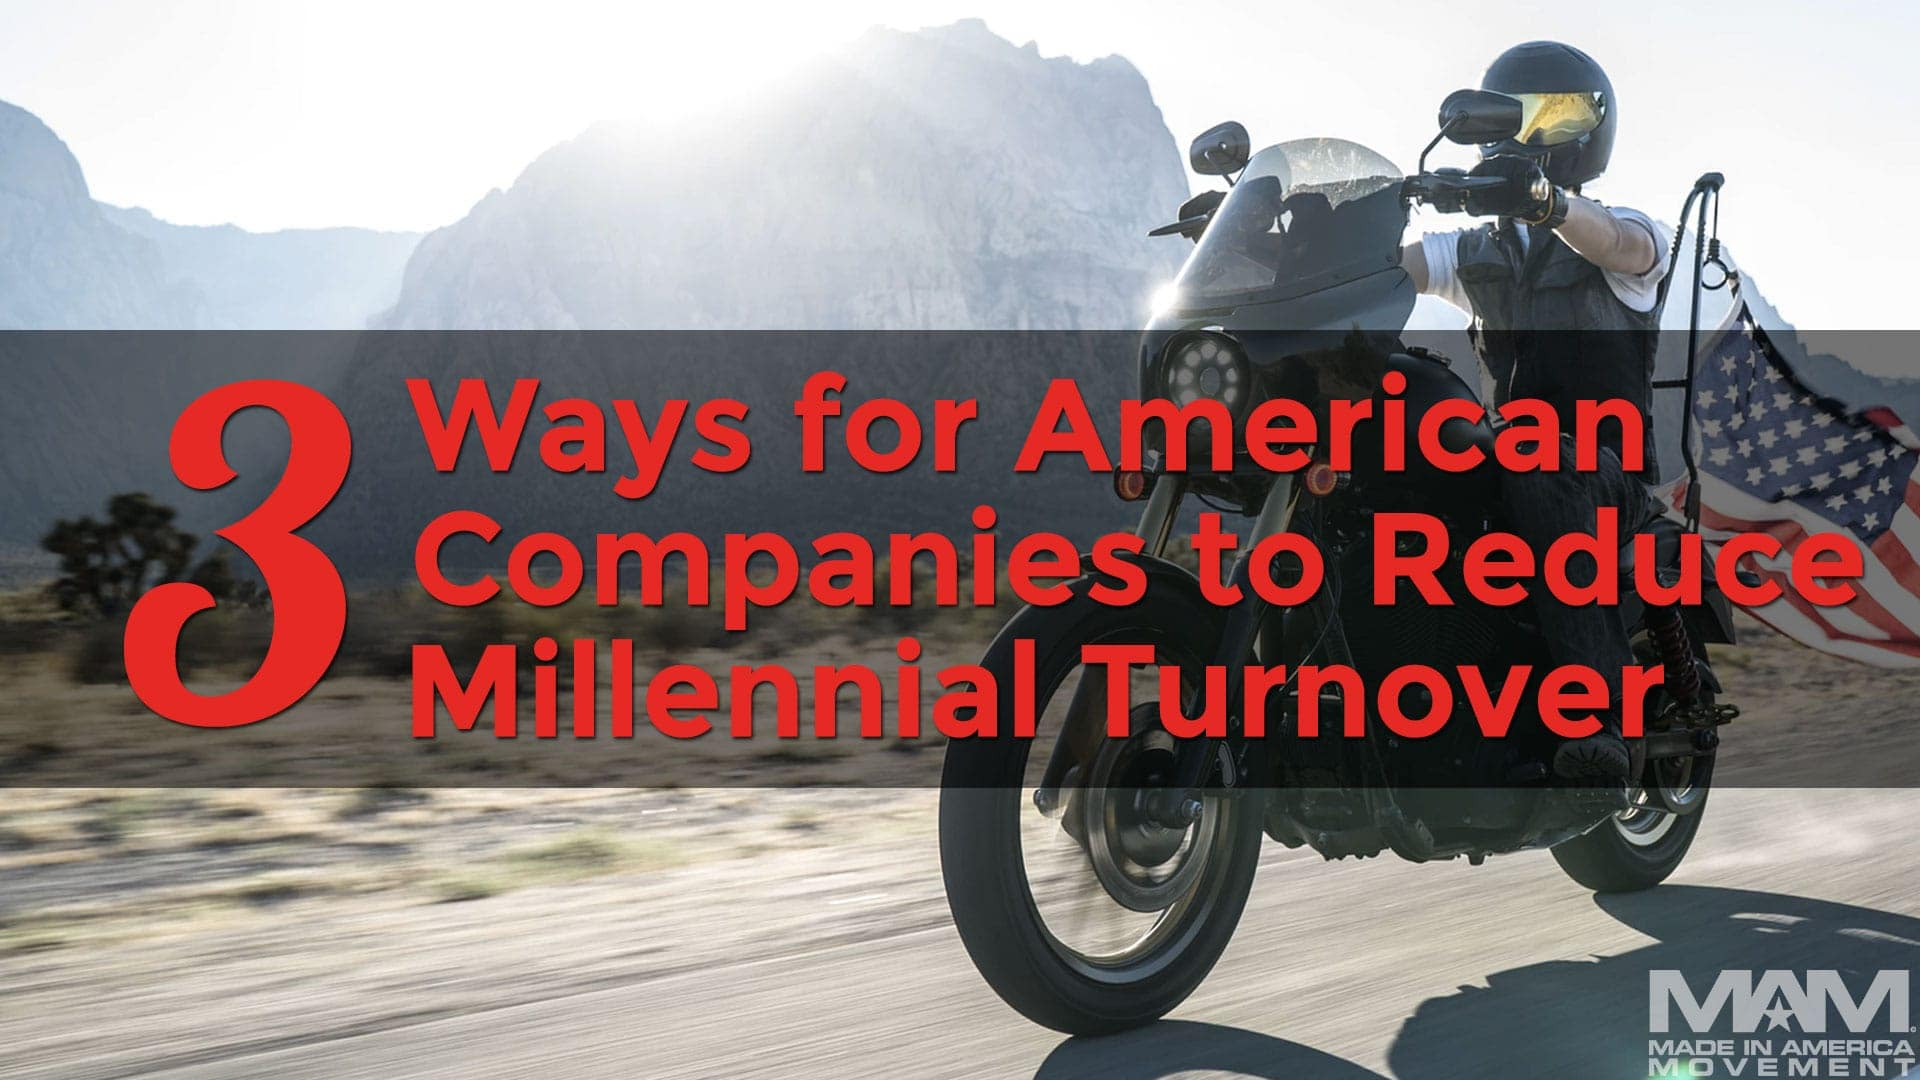 3 Ways for American Companies to Reduce Millennial Turnover